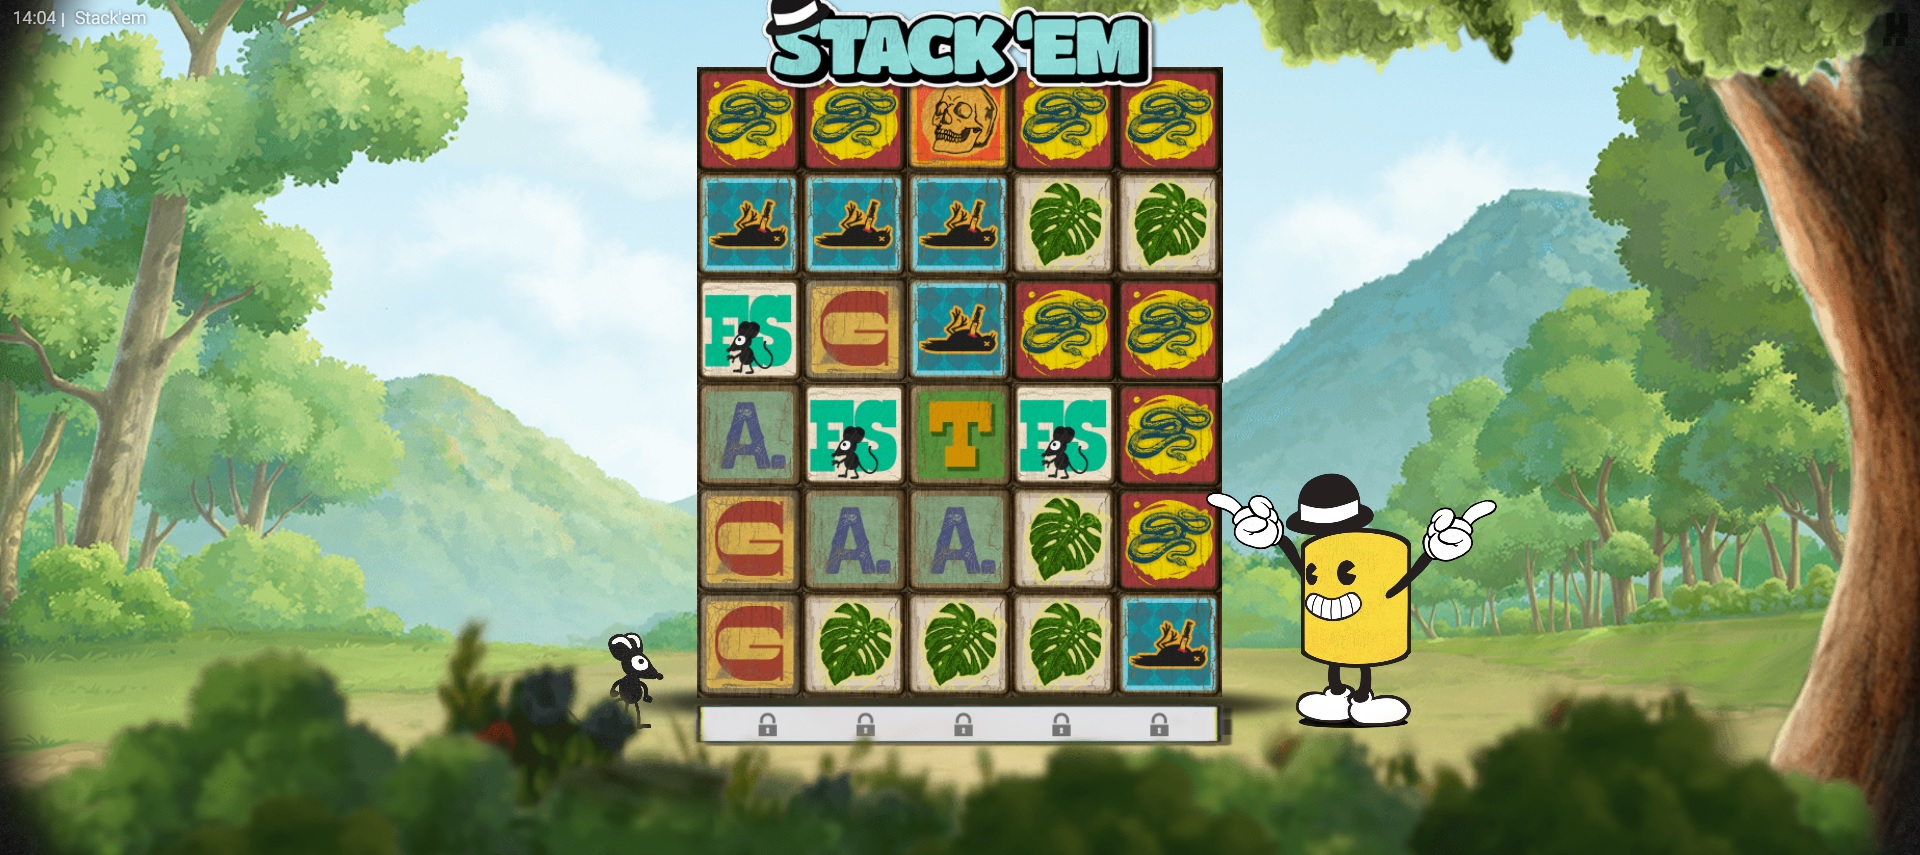 How to win big in Stack 'em – Free Spins feature